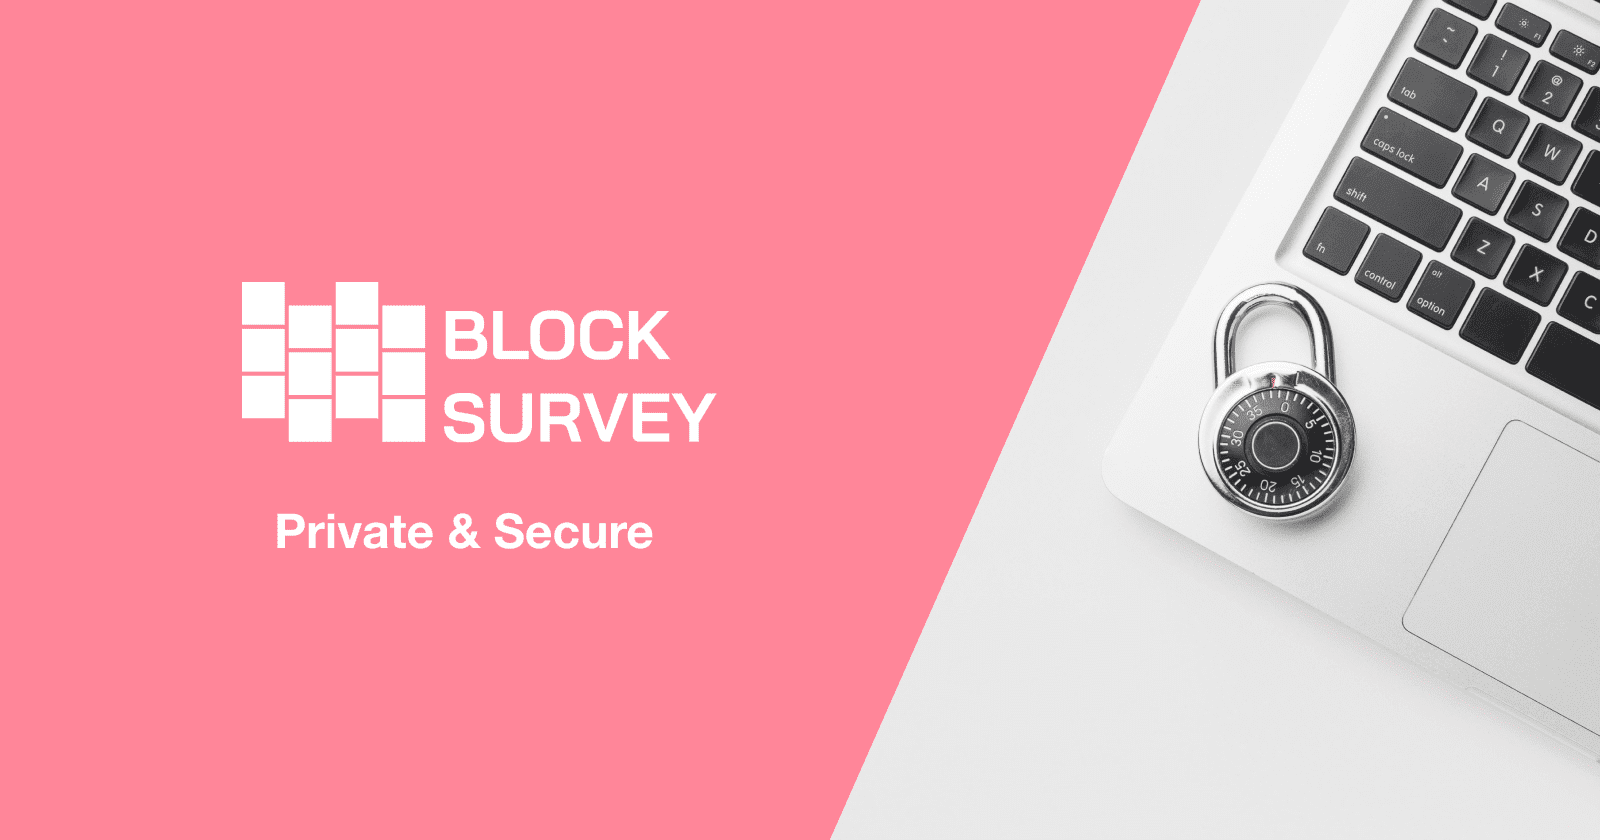 best-assessments-online-forms-and-surveys-blocksurvey-review-droidvilla-technology-solution-android-apk-phone-reviews-technology-updates-tipstricks